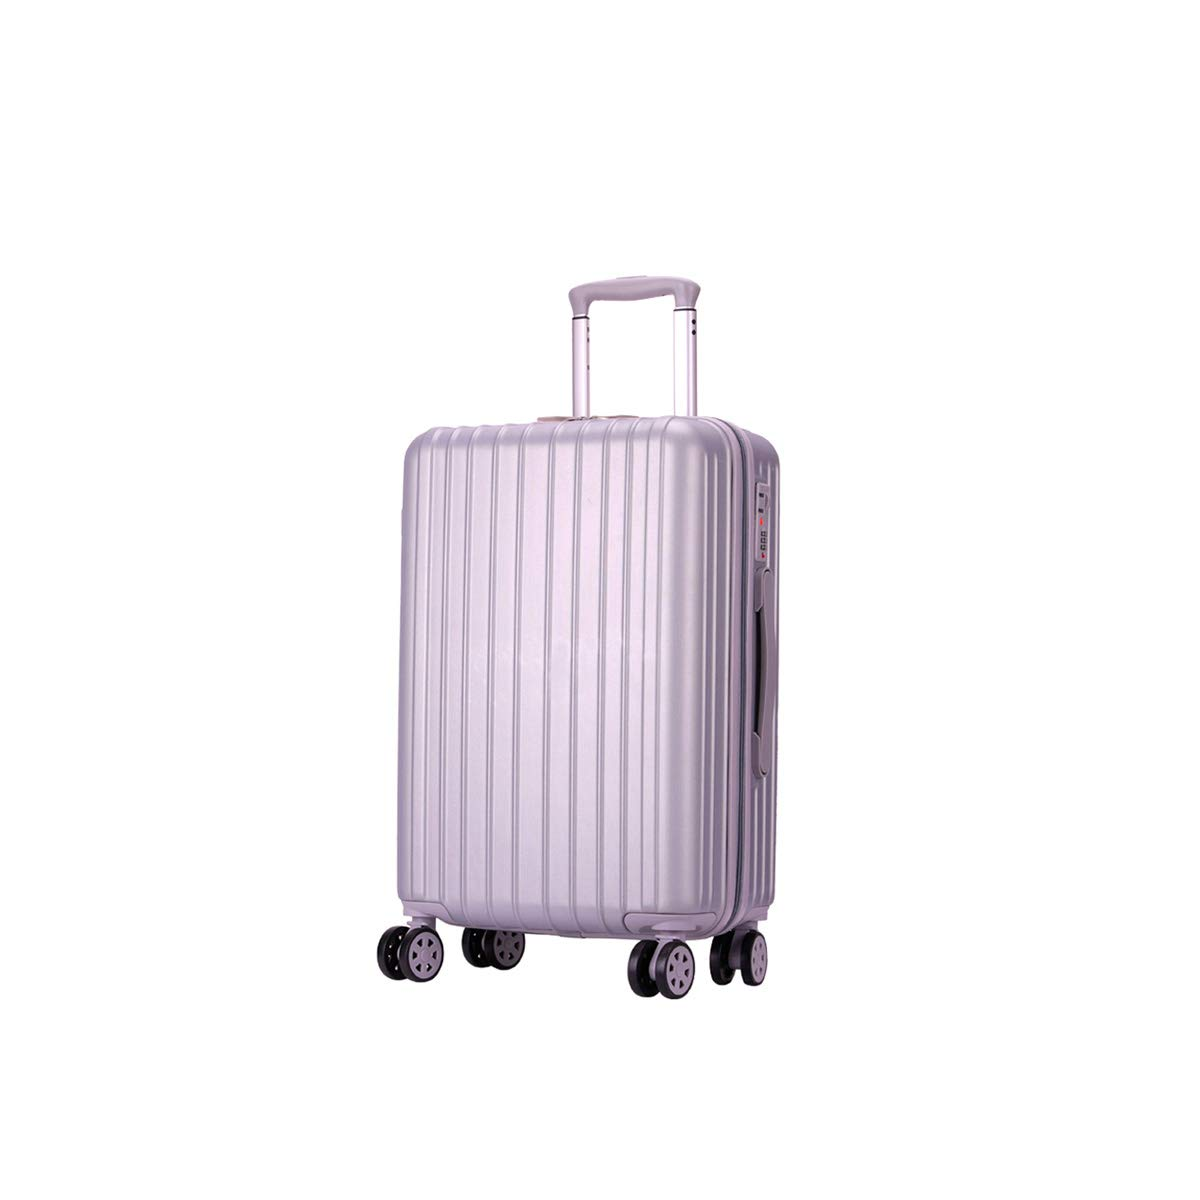 Trolley case Best Gift Travel Organizer Carry-on Luggage 20//22//24 inch Black Bahaowenjuguan Hard Spinning Suitcase Color : Silver, Size : 22